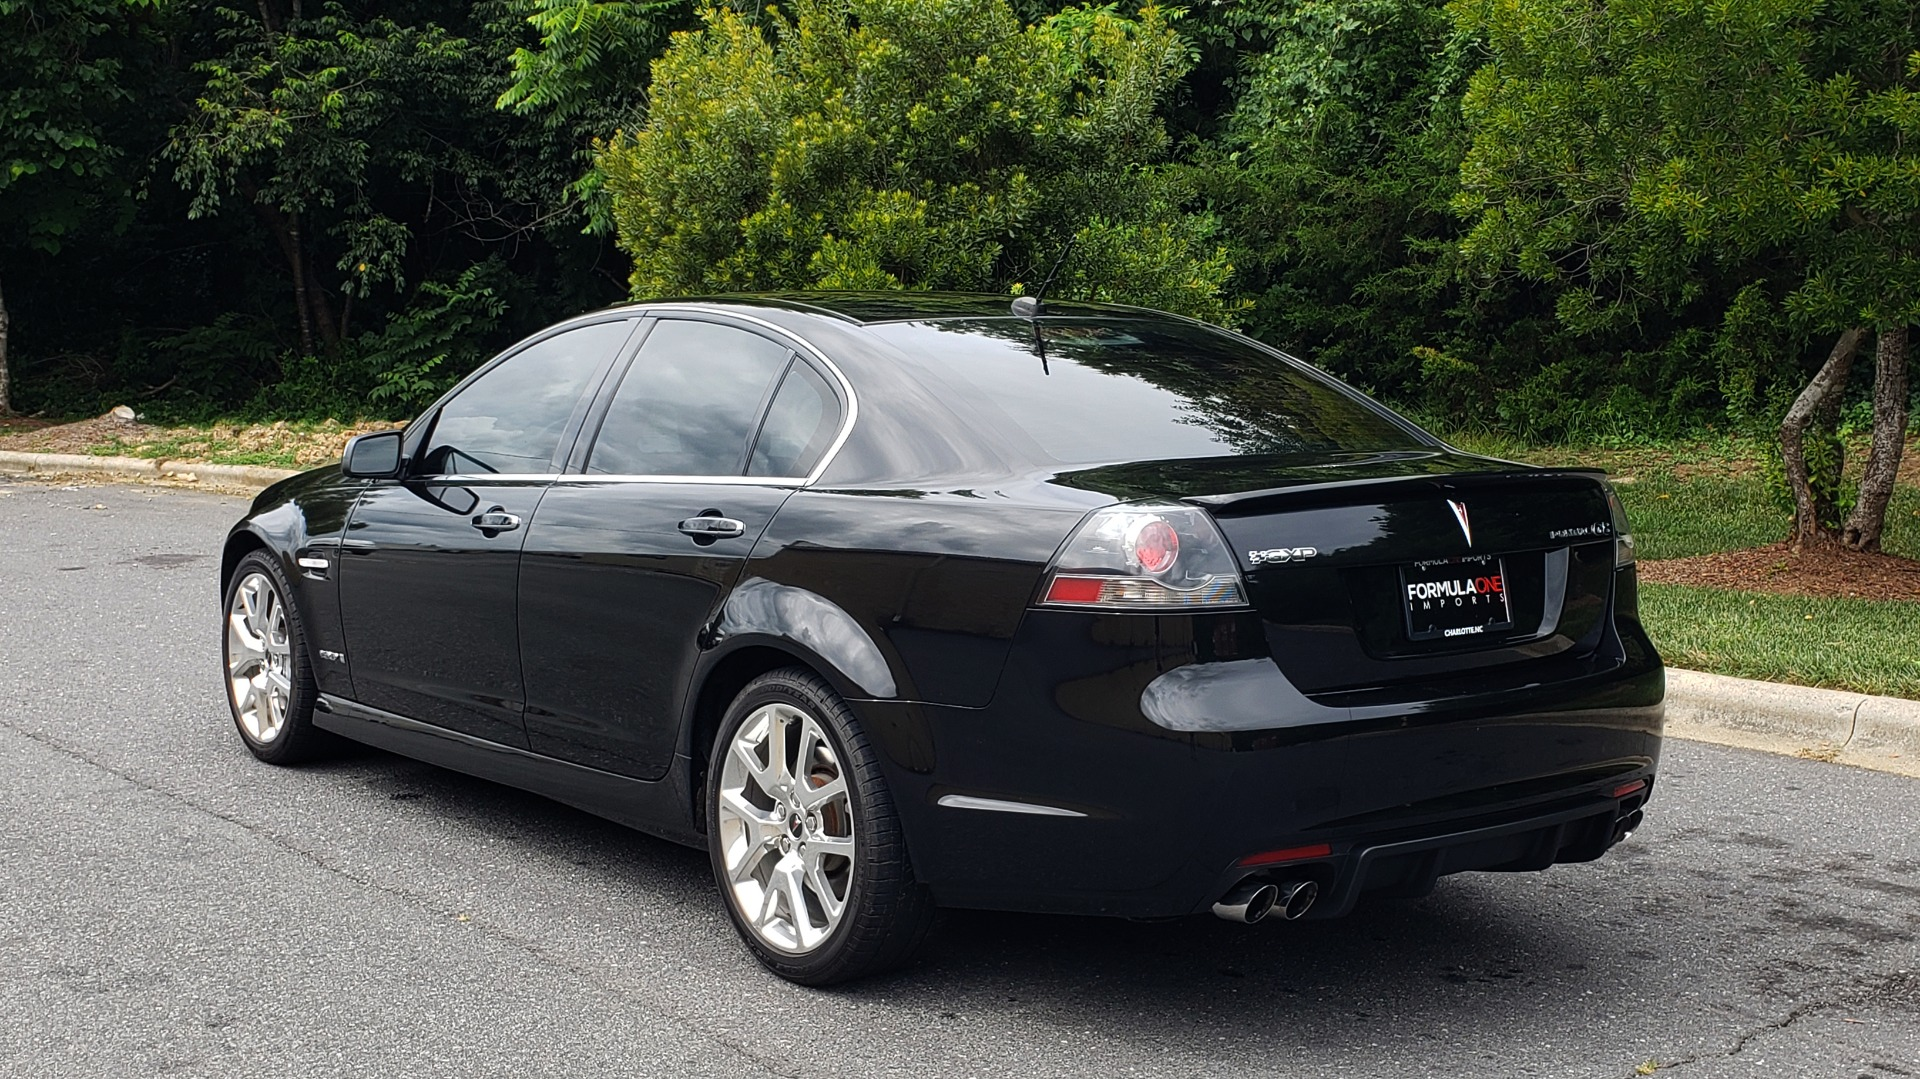 Used 2009 Pontiac G8 GXP / 6.2L LS3 V8 / 6-SPD AUTO / SUNROOF / 19IN WHEELS for sale Sold at Formula Imports in Charlotte NC 28227 6